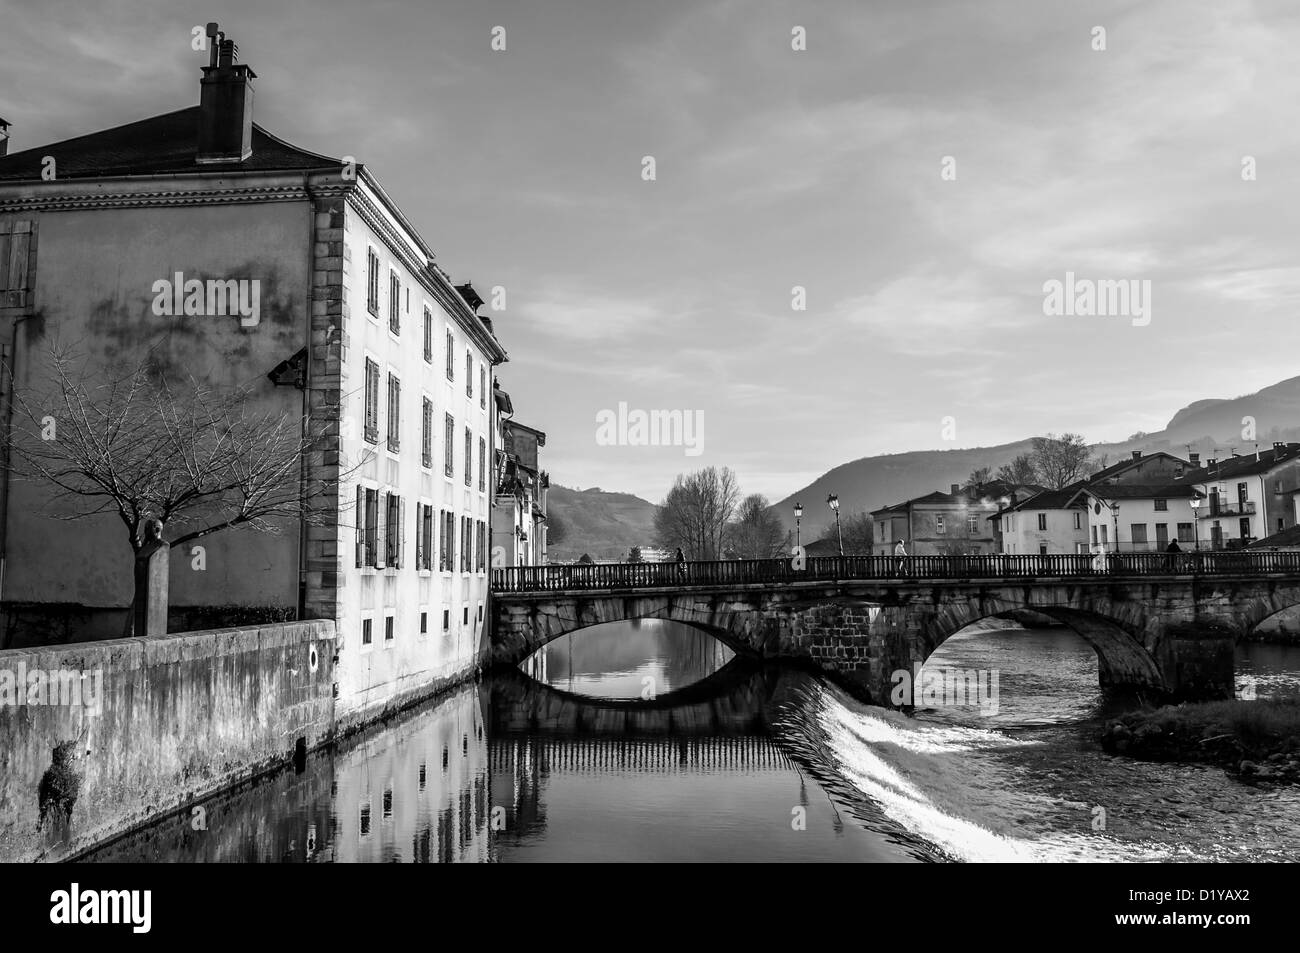 People crossing the stone bridge over the River Salat in St. Girons, Midi-Pyrenees, France. Black and white. B&W - Stock Image